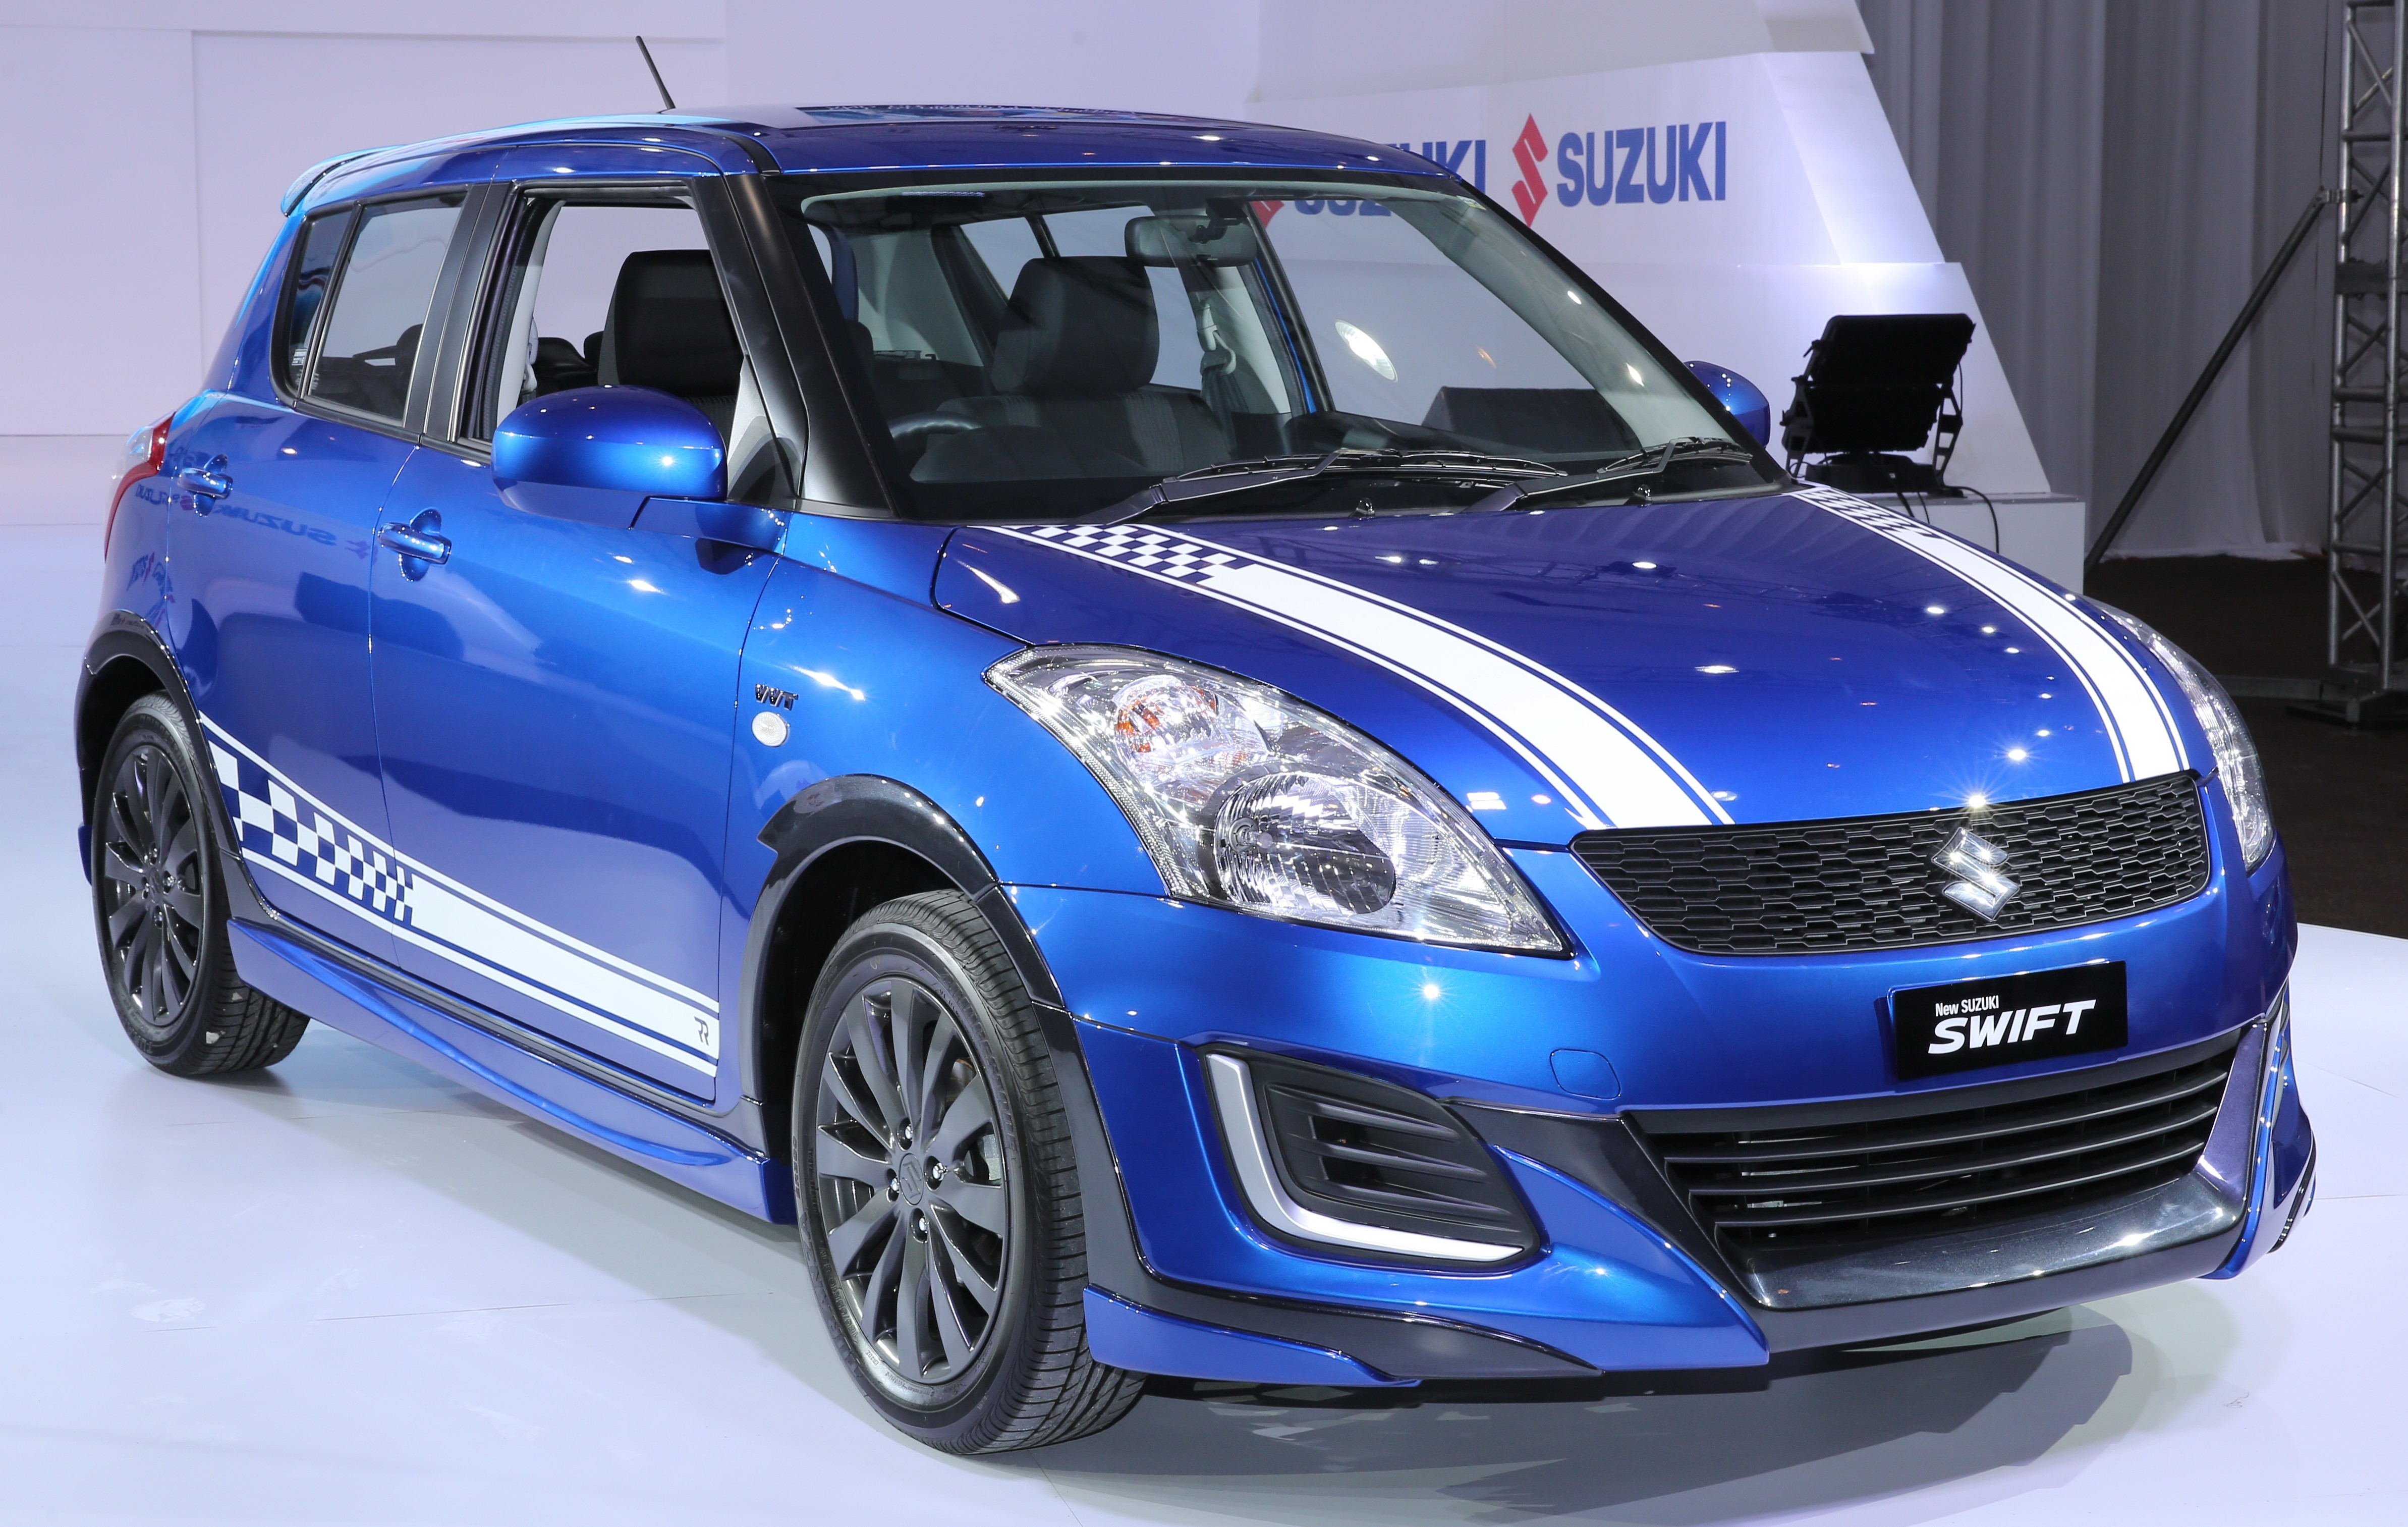 suzuki swift rr2 limited edition introduced rm70k. Black Bedroom Furniture Sets. Home Design Ideas